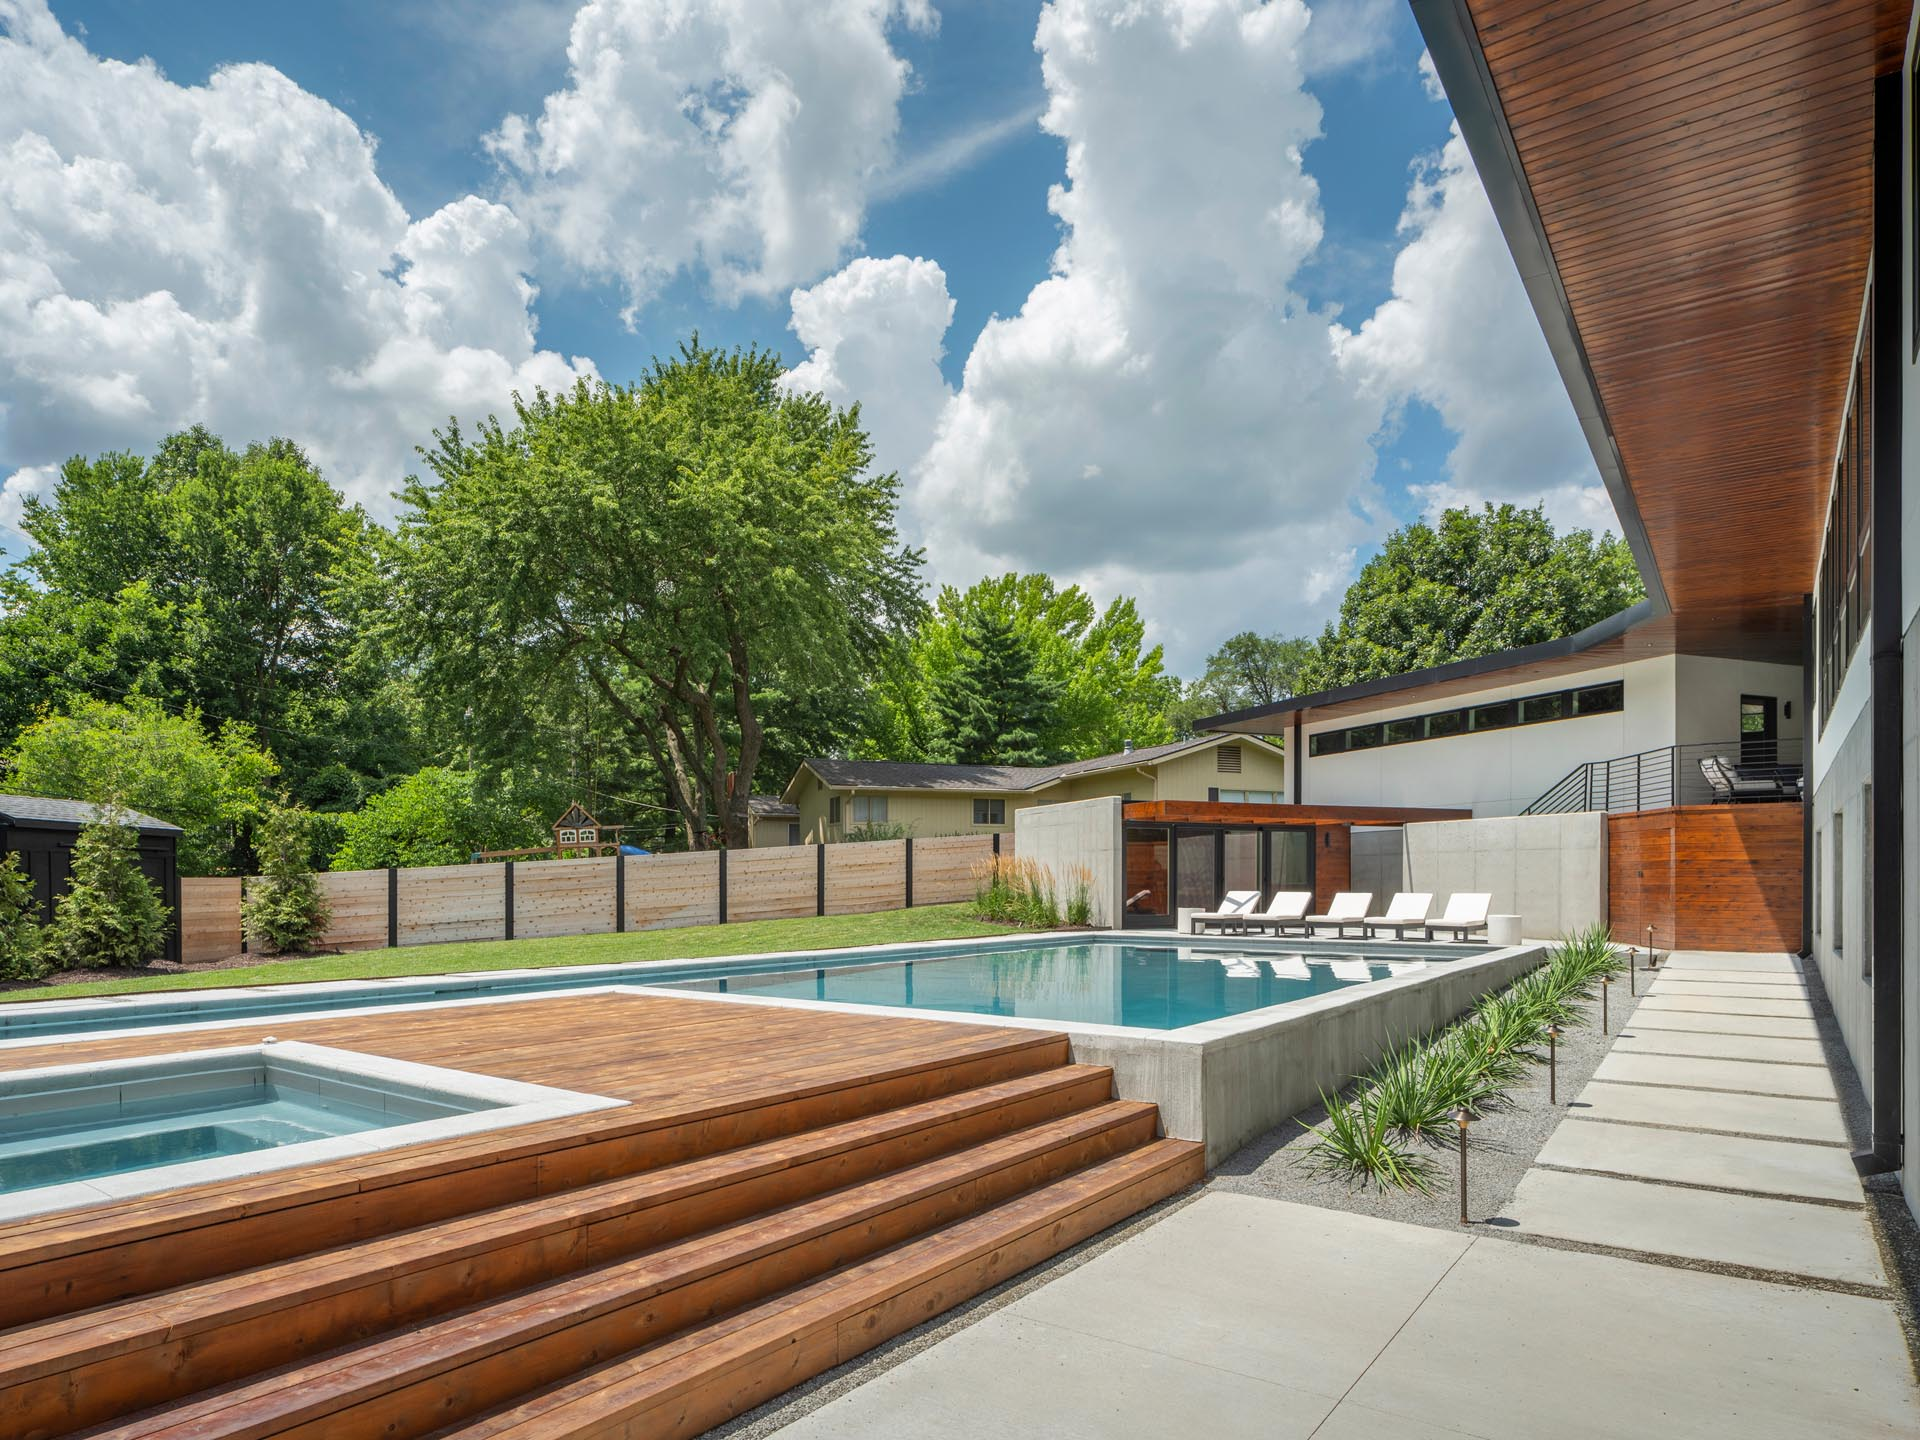 A mid-century modern inspired home with large landscaped yard, a swimming pool with a hot tub, a pool house, outdoor shower, and a deck.